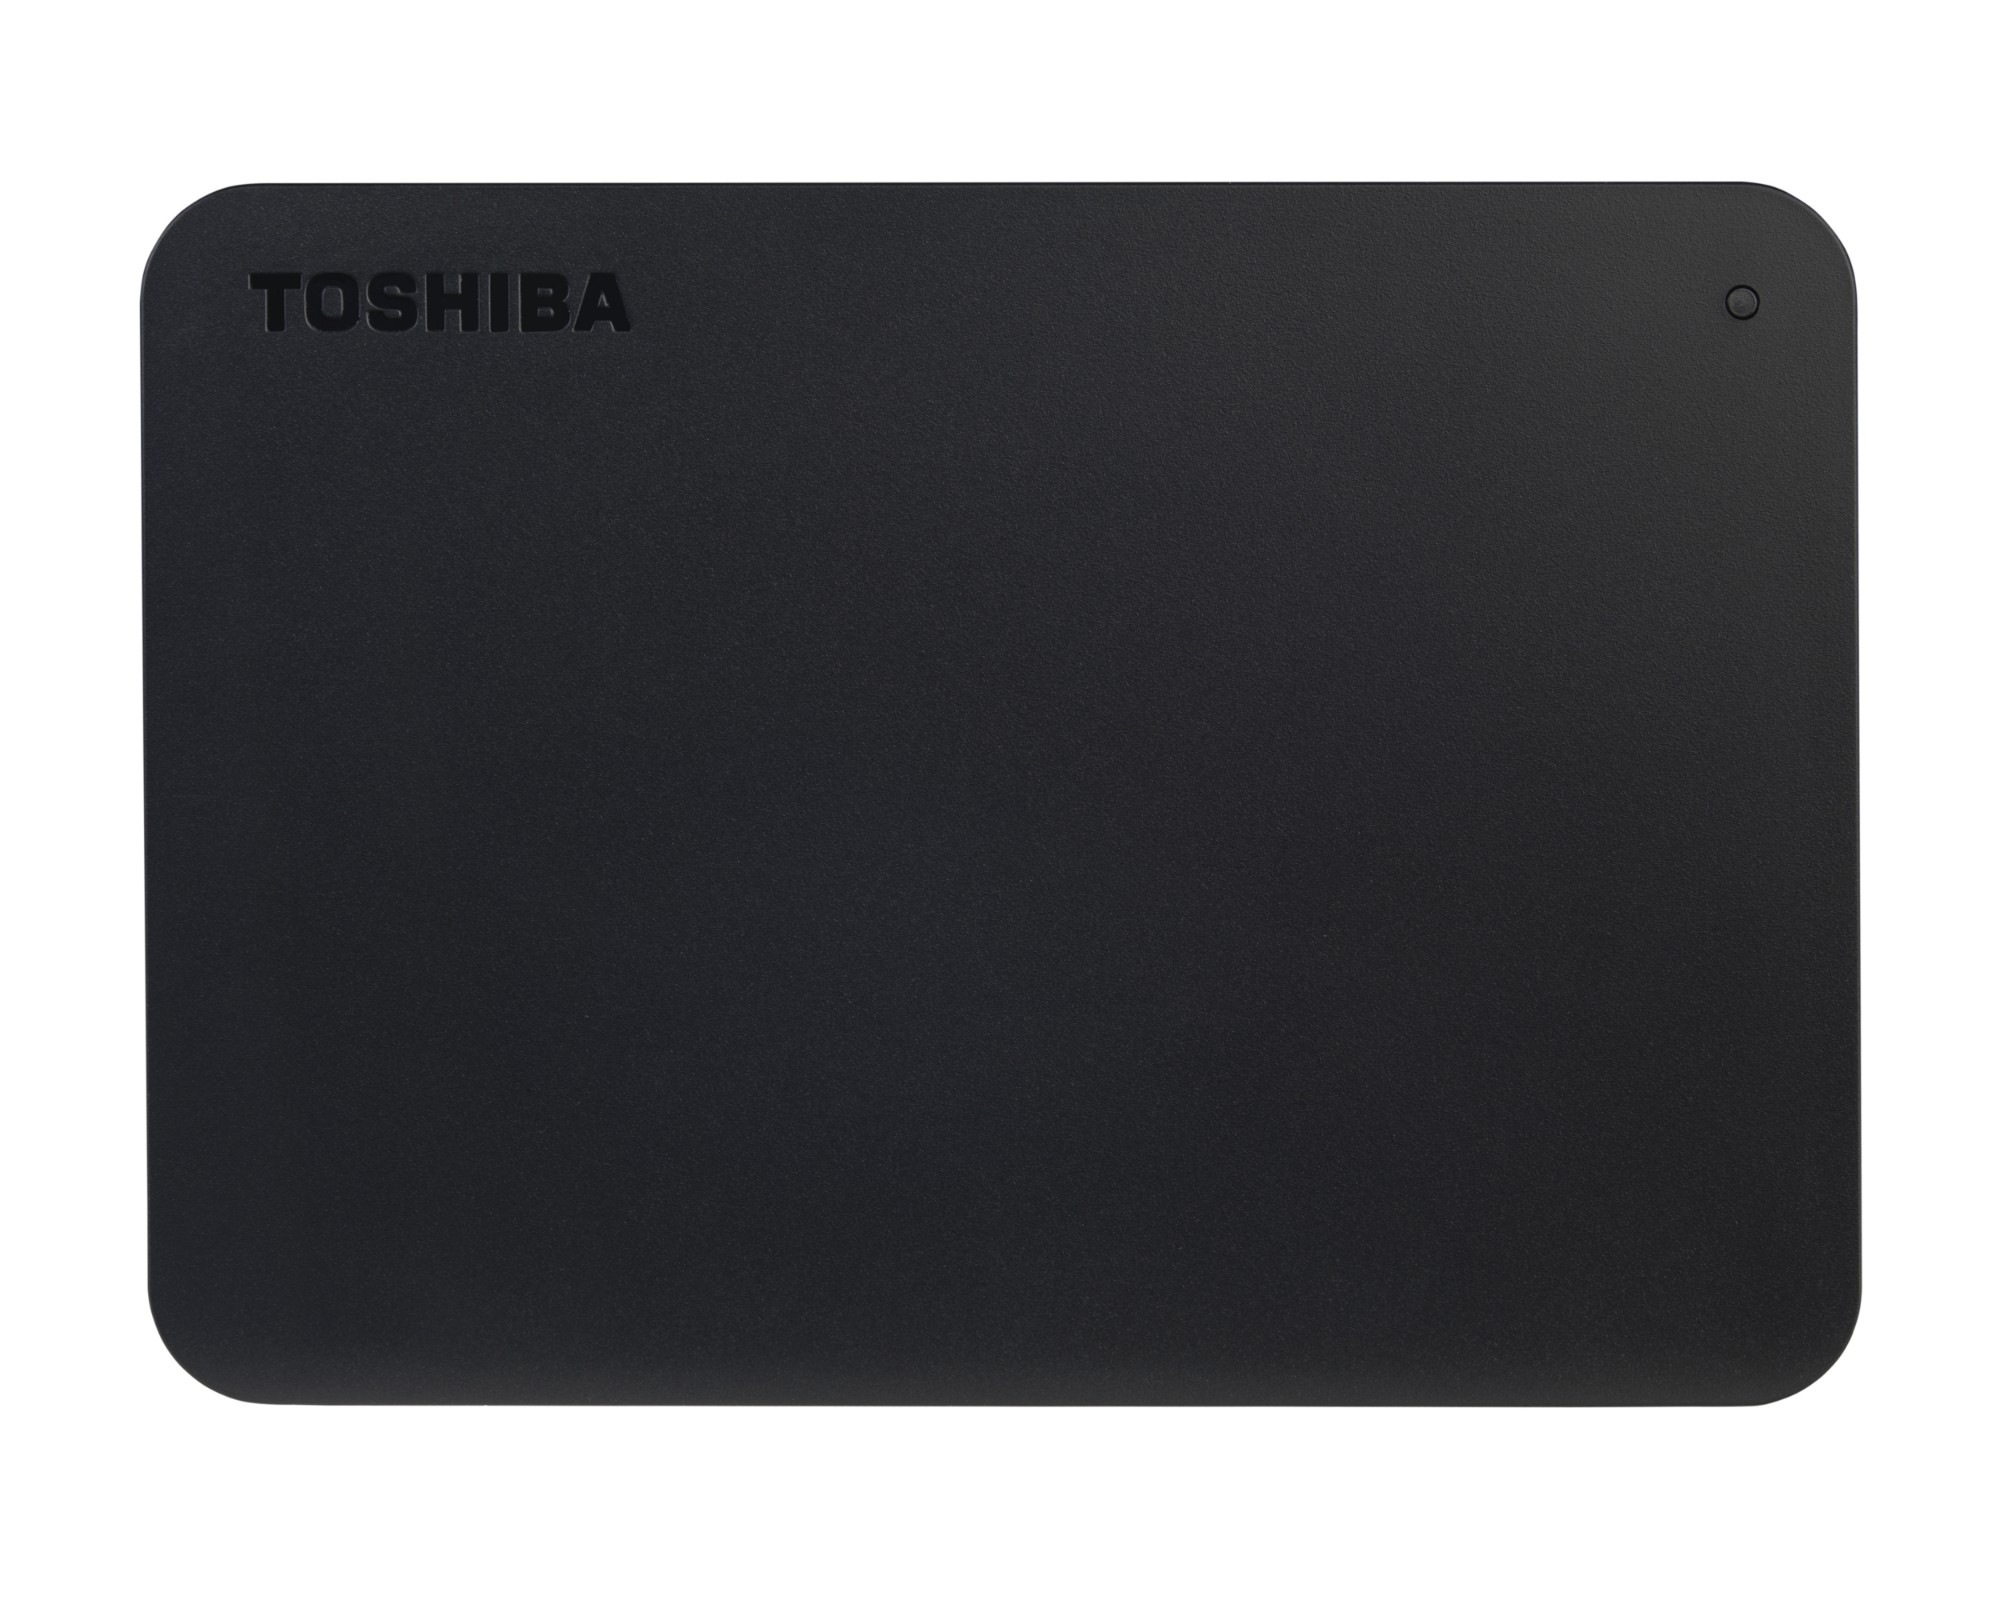 Toshiba Canvio Basics 1 TB Black